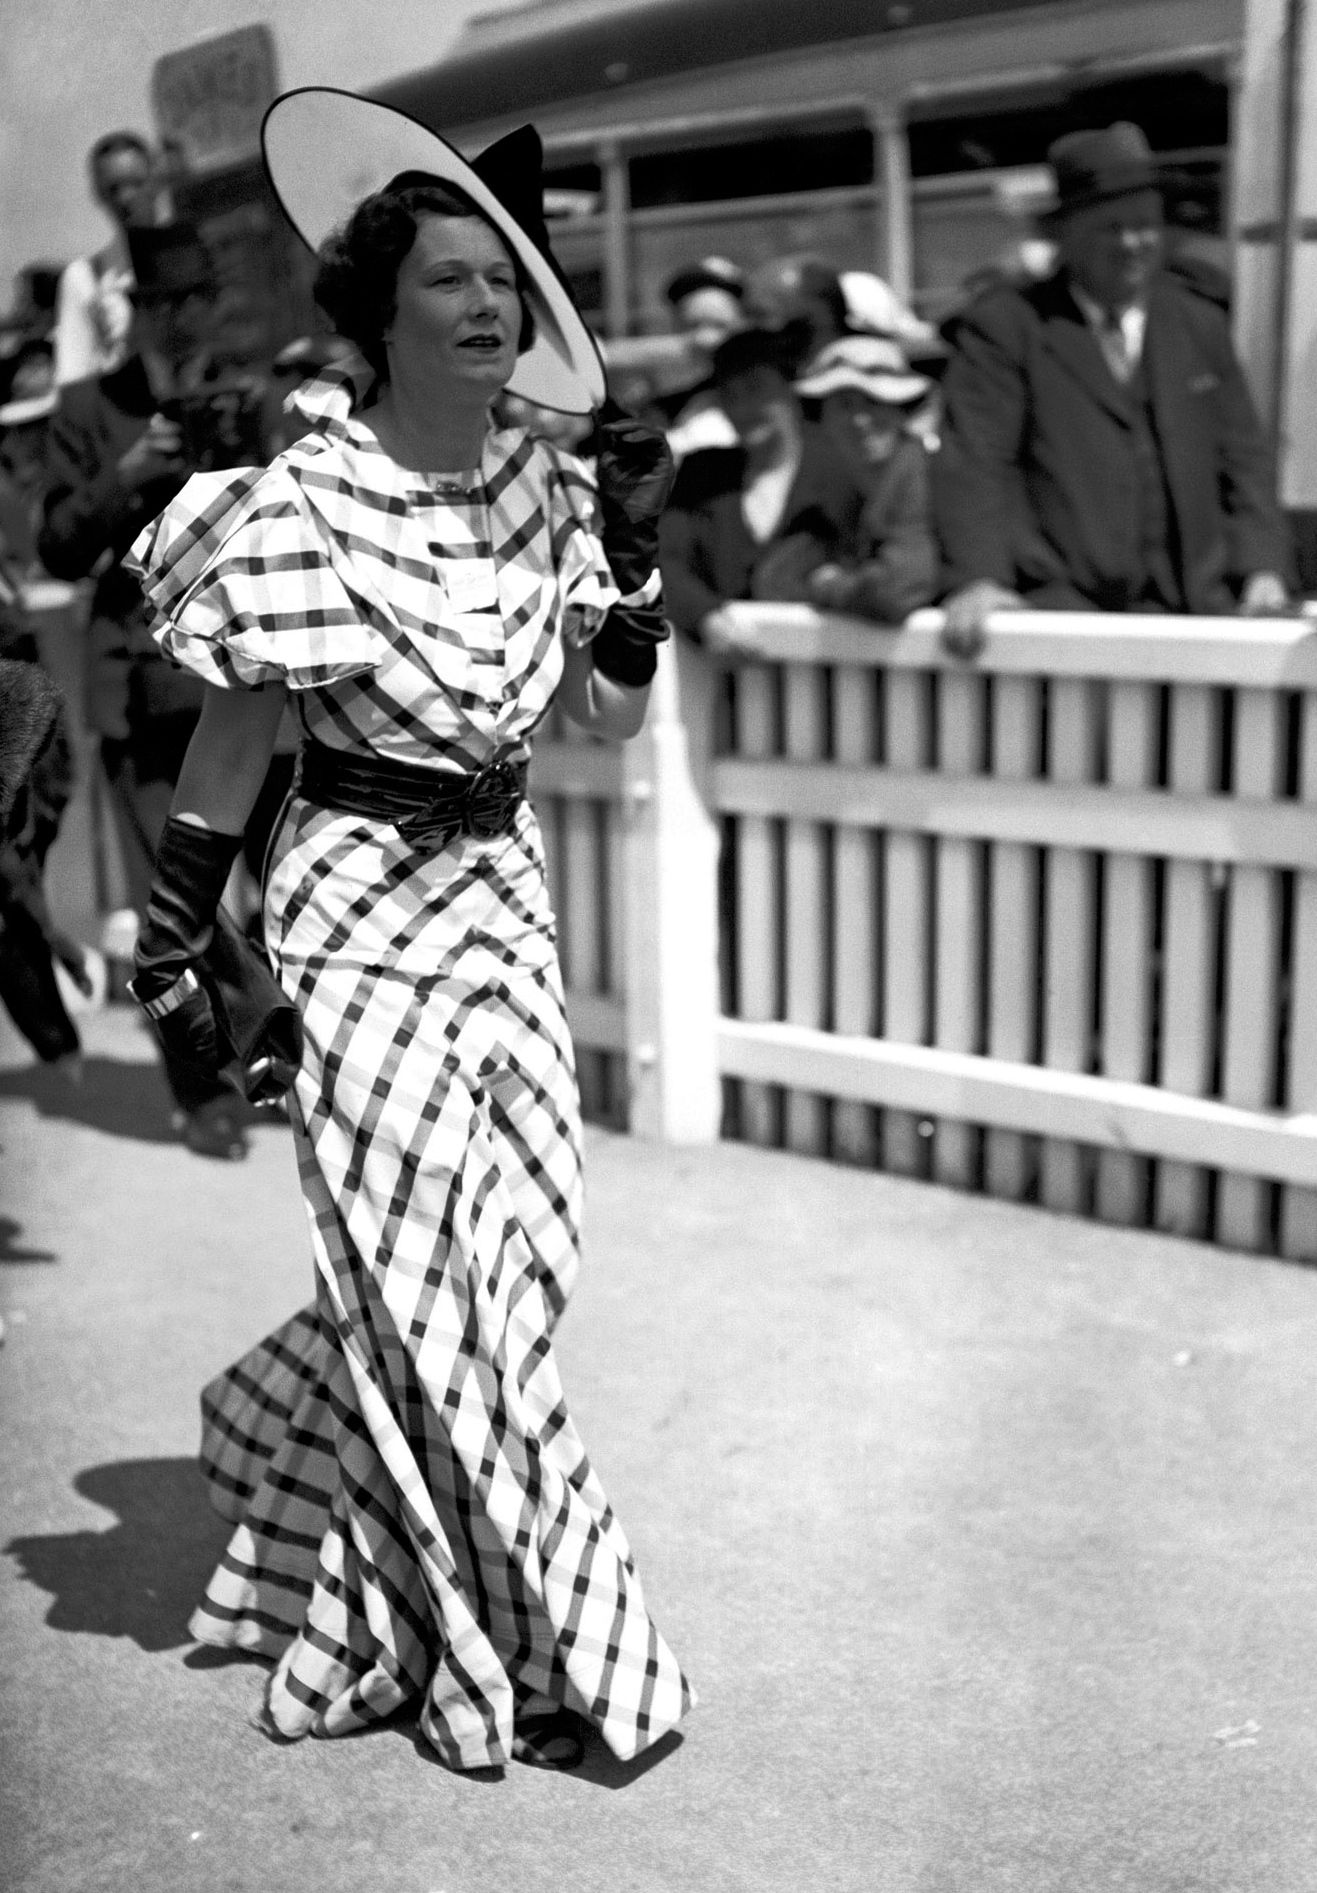 Pin By 1930s/1940s Women's Fashion On 1930s Afternoon